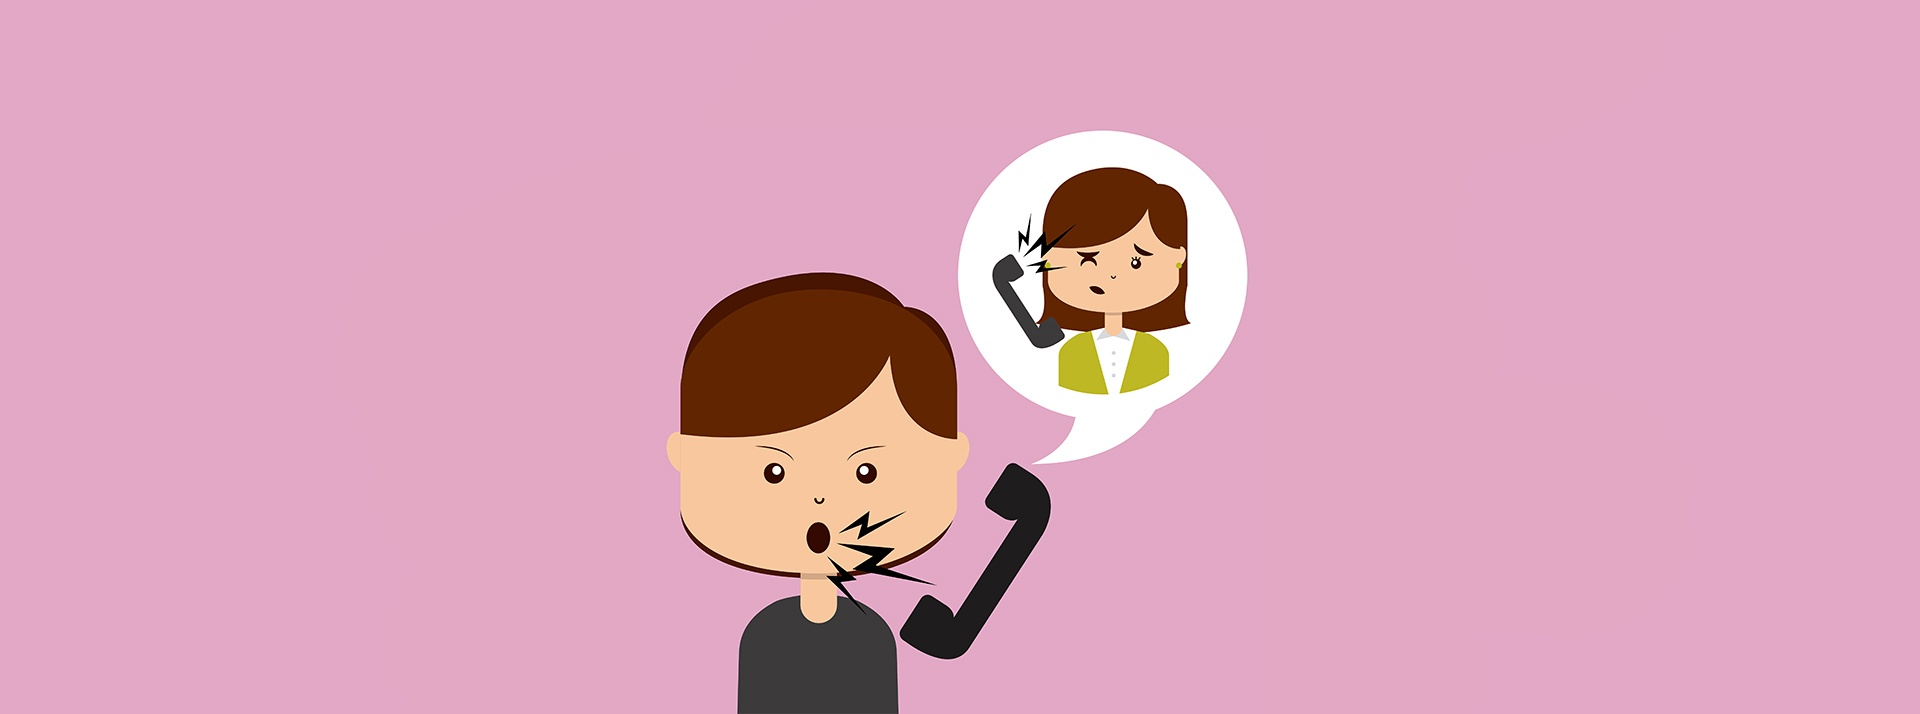 How to Deal with Angry Customers (According to Science) [Infographic]